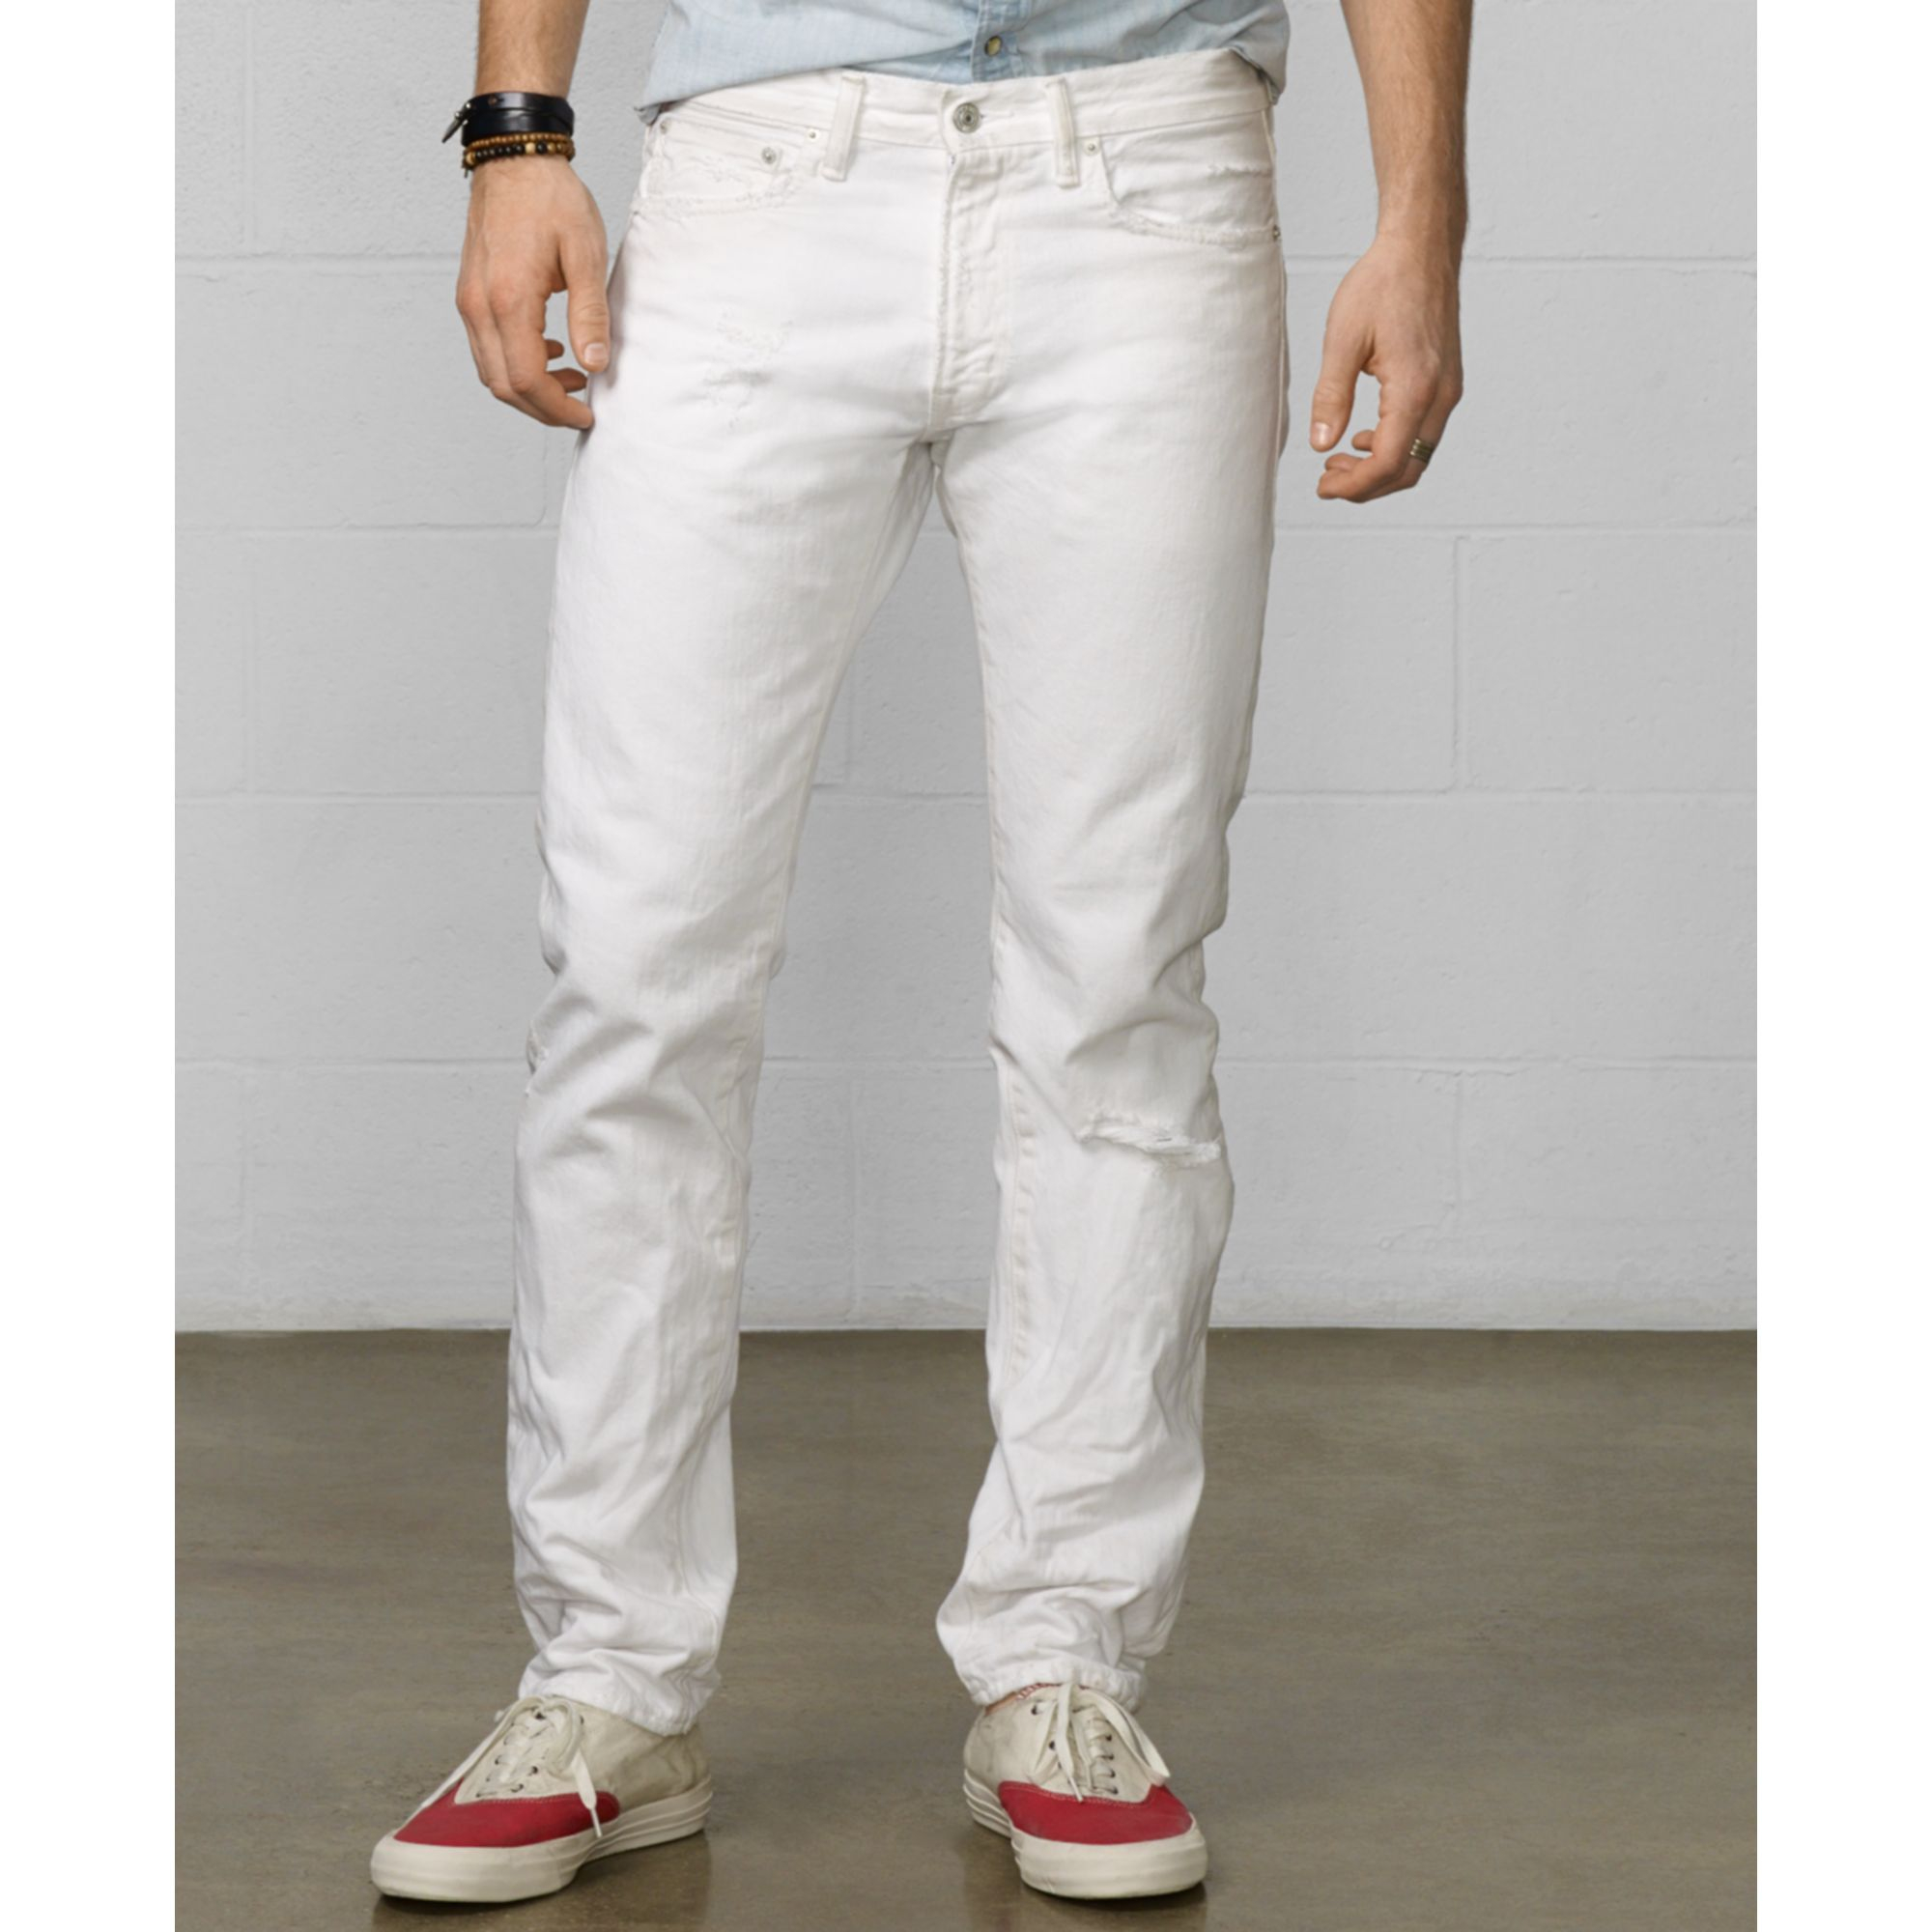 denim supply ralph lauren straightleg carsville jeans in white for men lyst. Black Bedroom Furniture Sets. Home Design Ideas